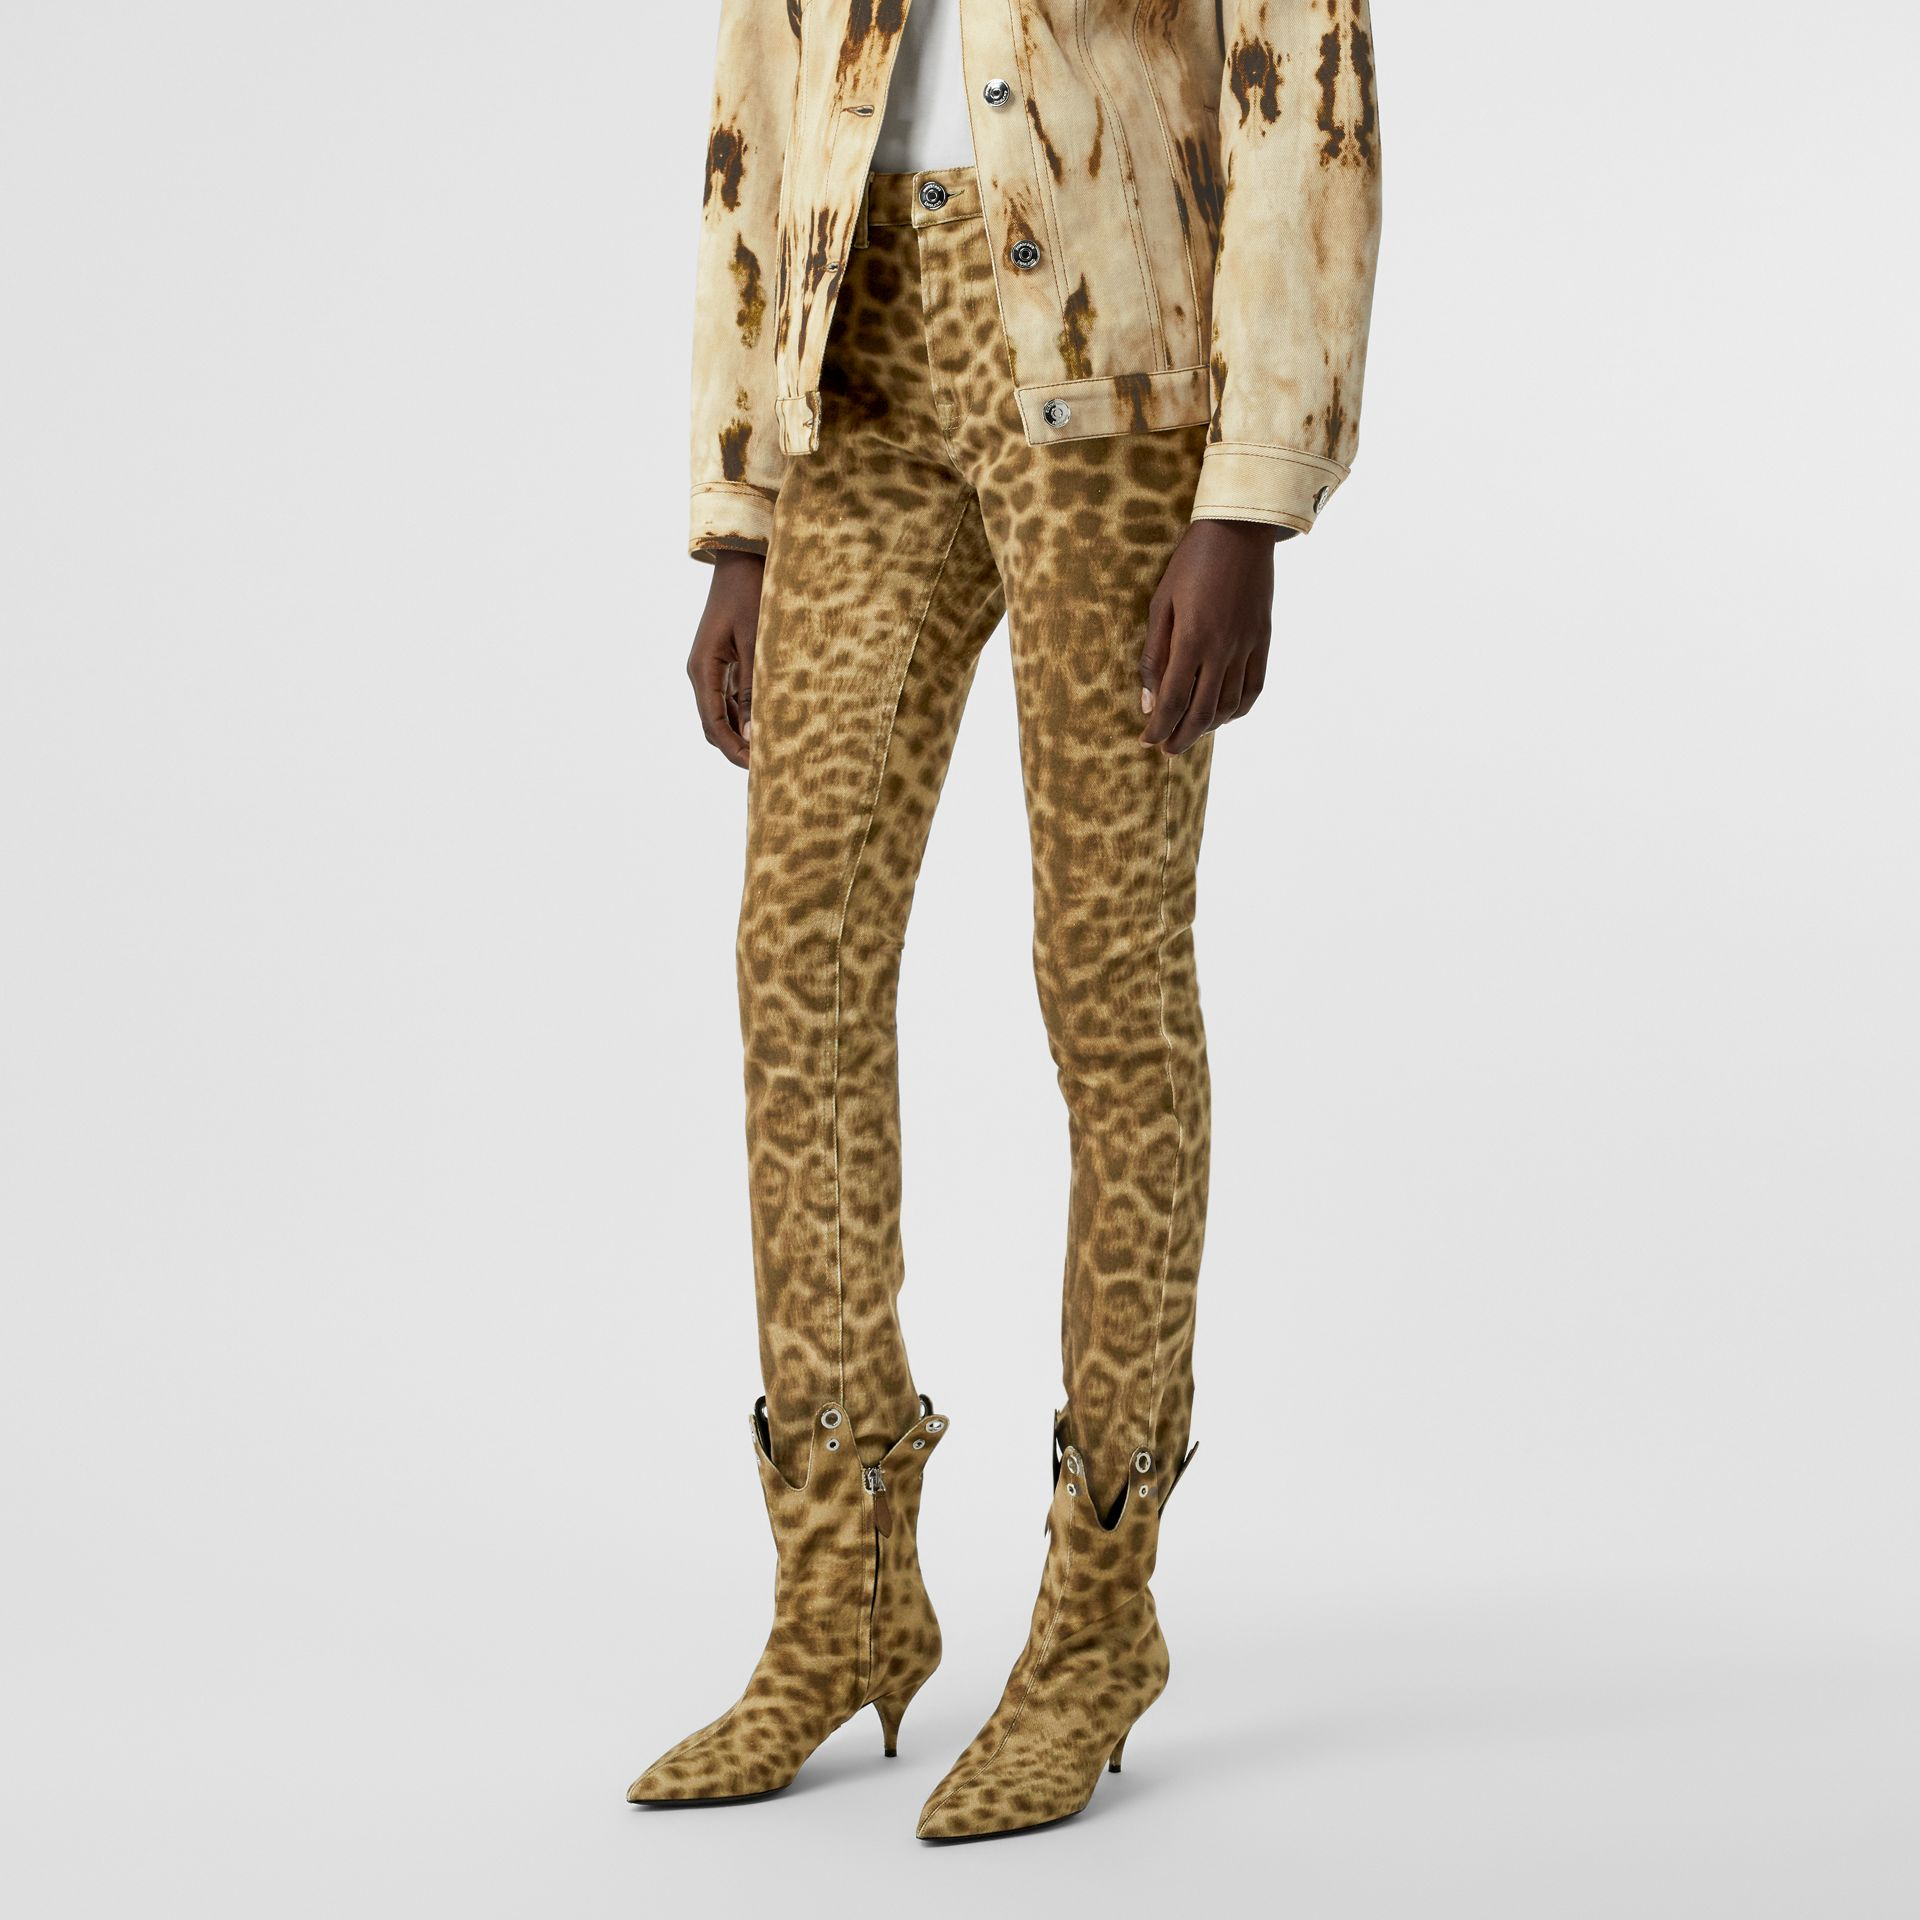 Straight Fit Leopard Print Japanese Denim Jeans in Beige - Women | Burberry United Kingdom - gallery image 3